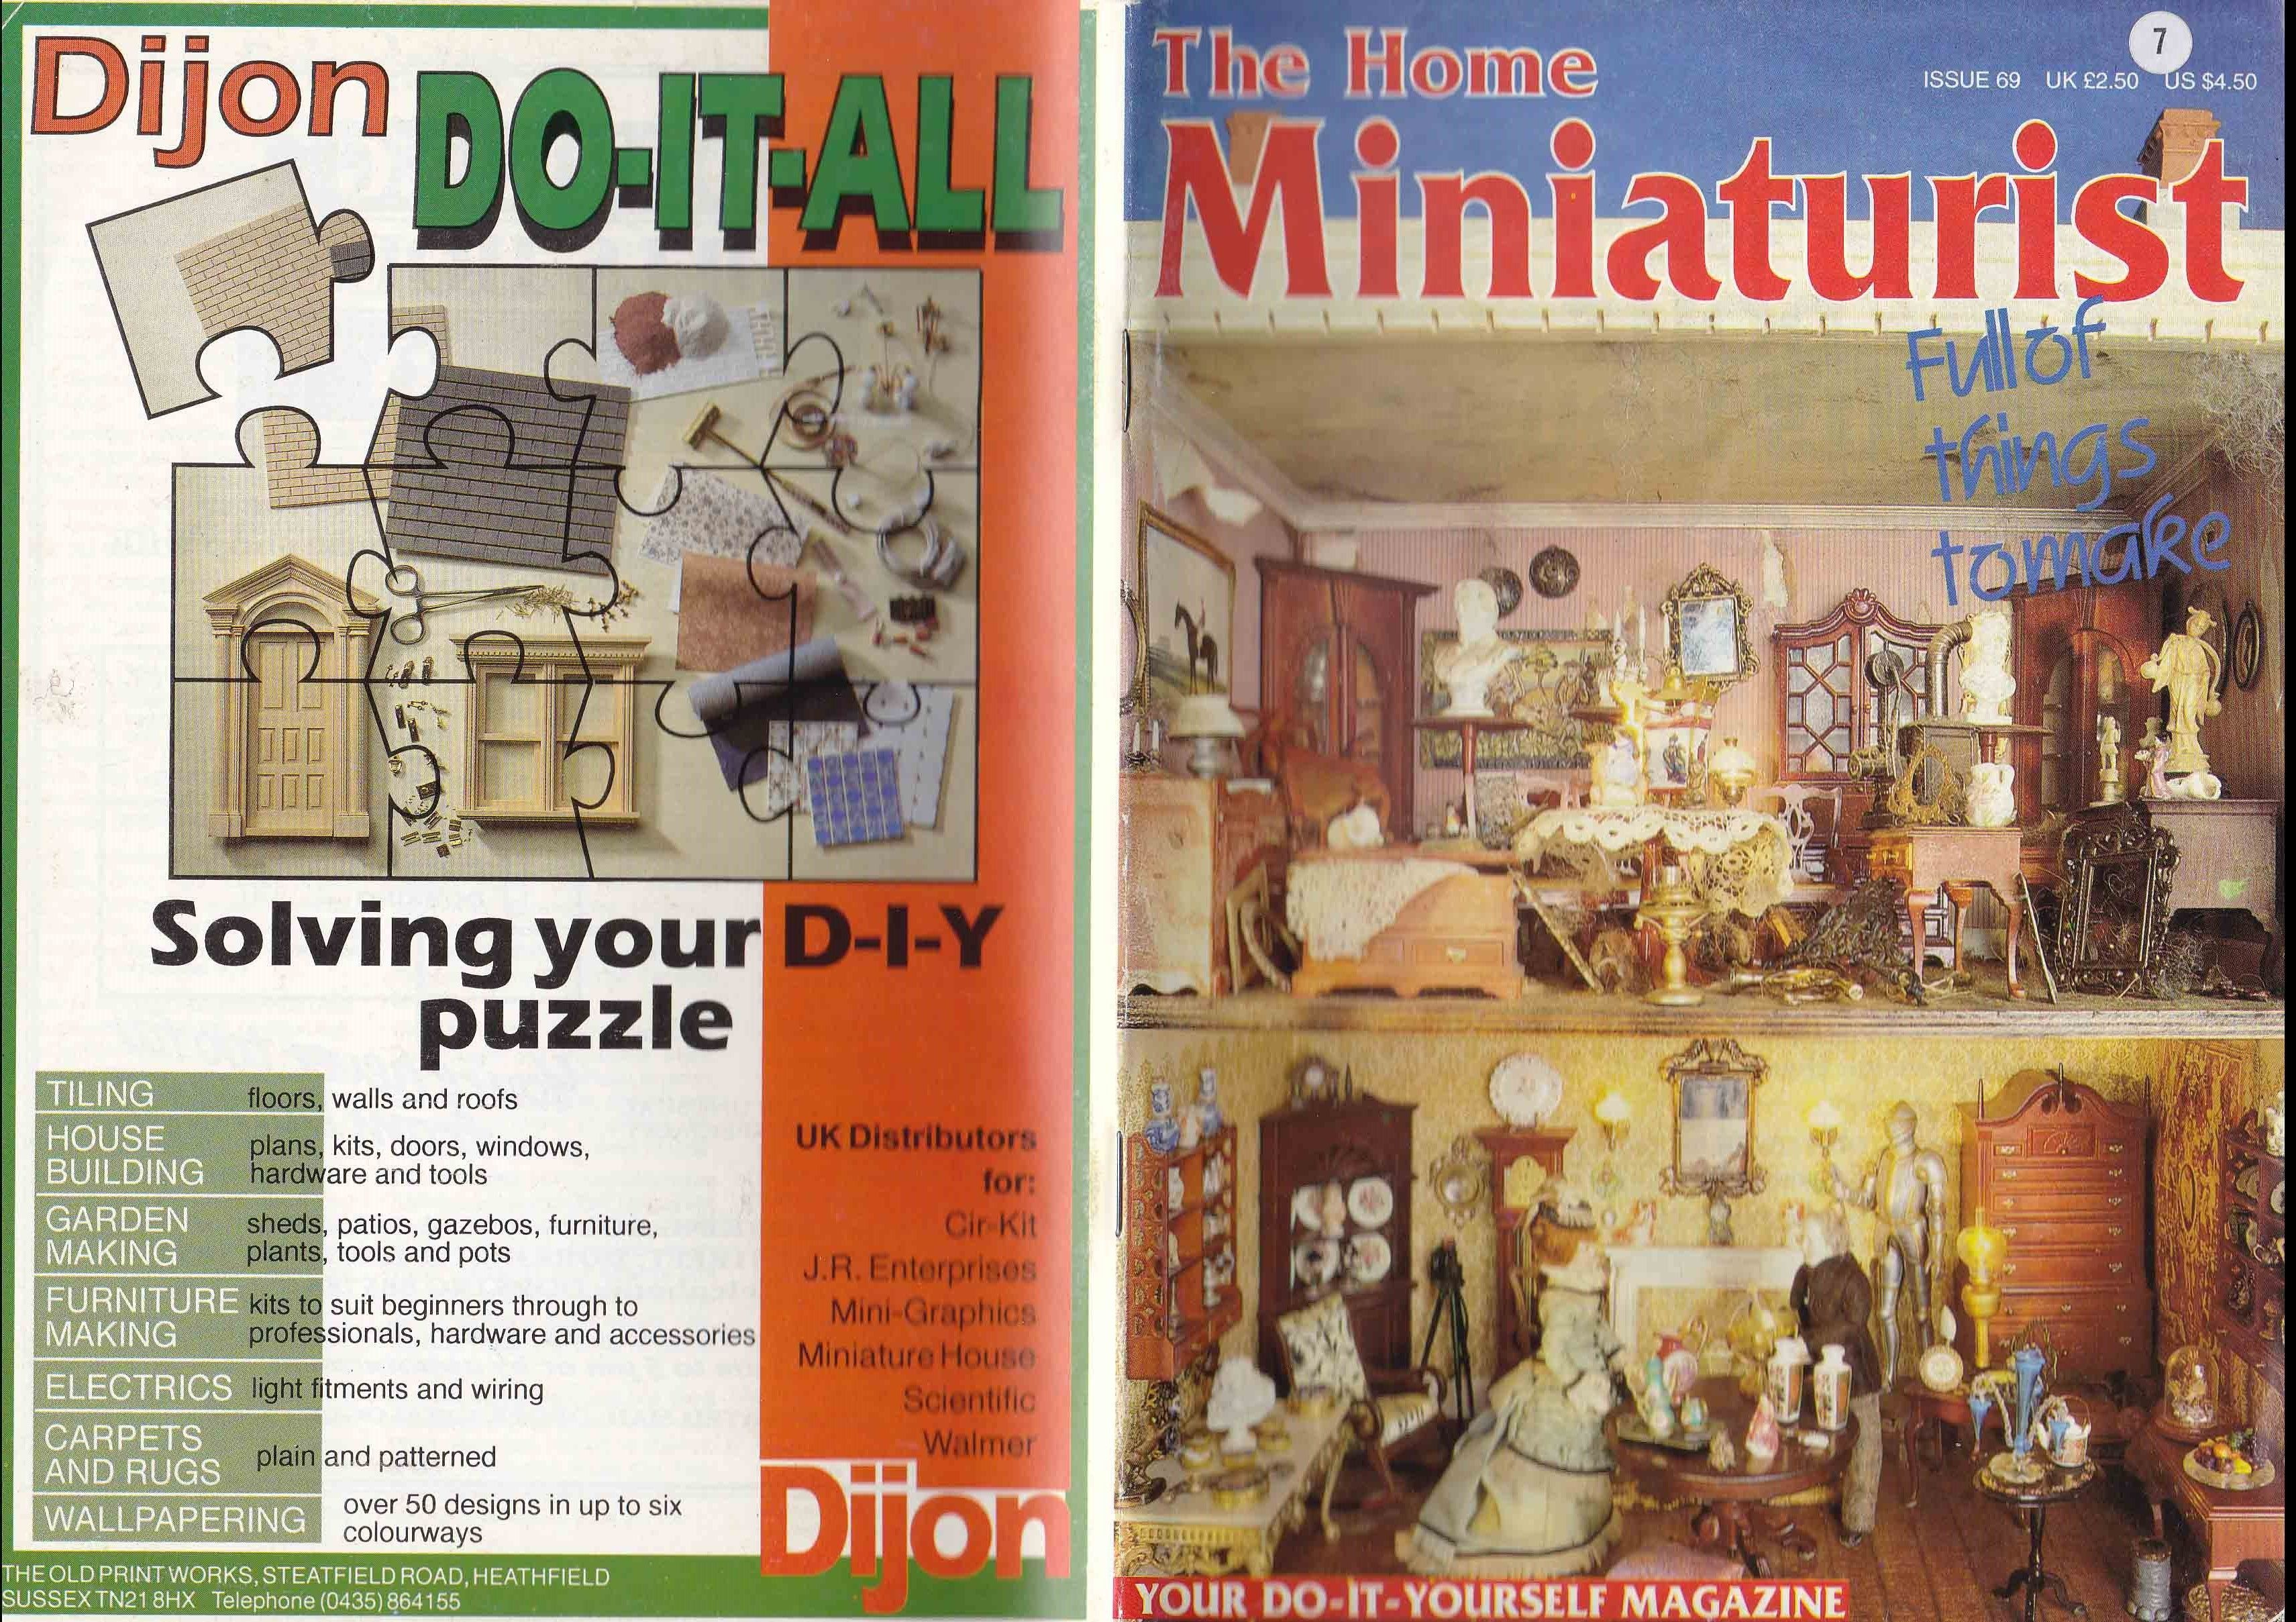 Pin By Taina Ingstrm On Barbies Printables 12 Pinterest Building Wiring Books Mini Book Stuff Magazine Covers Barbie Miniatures Miniature Cover Doll